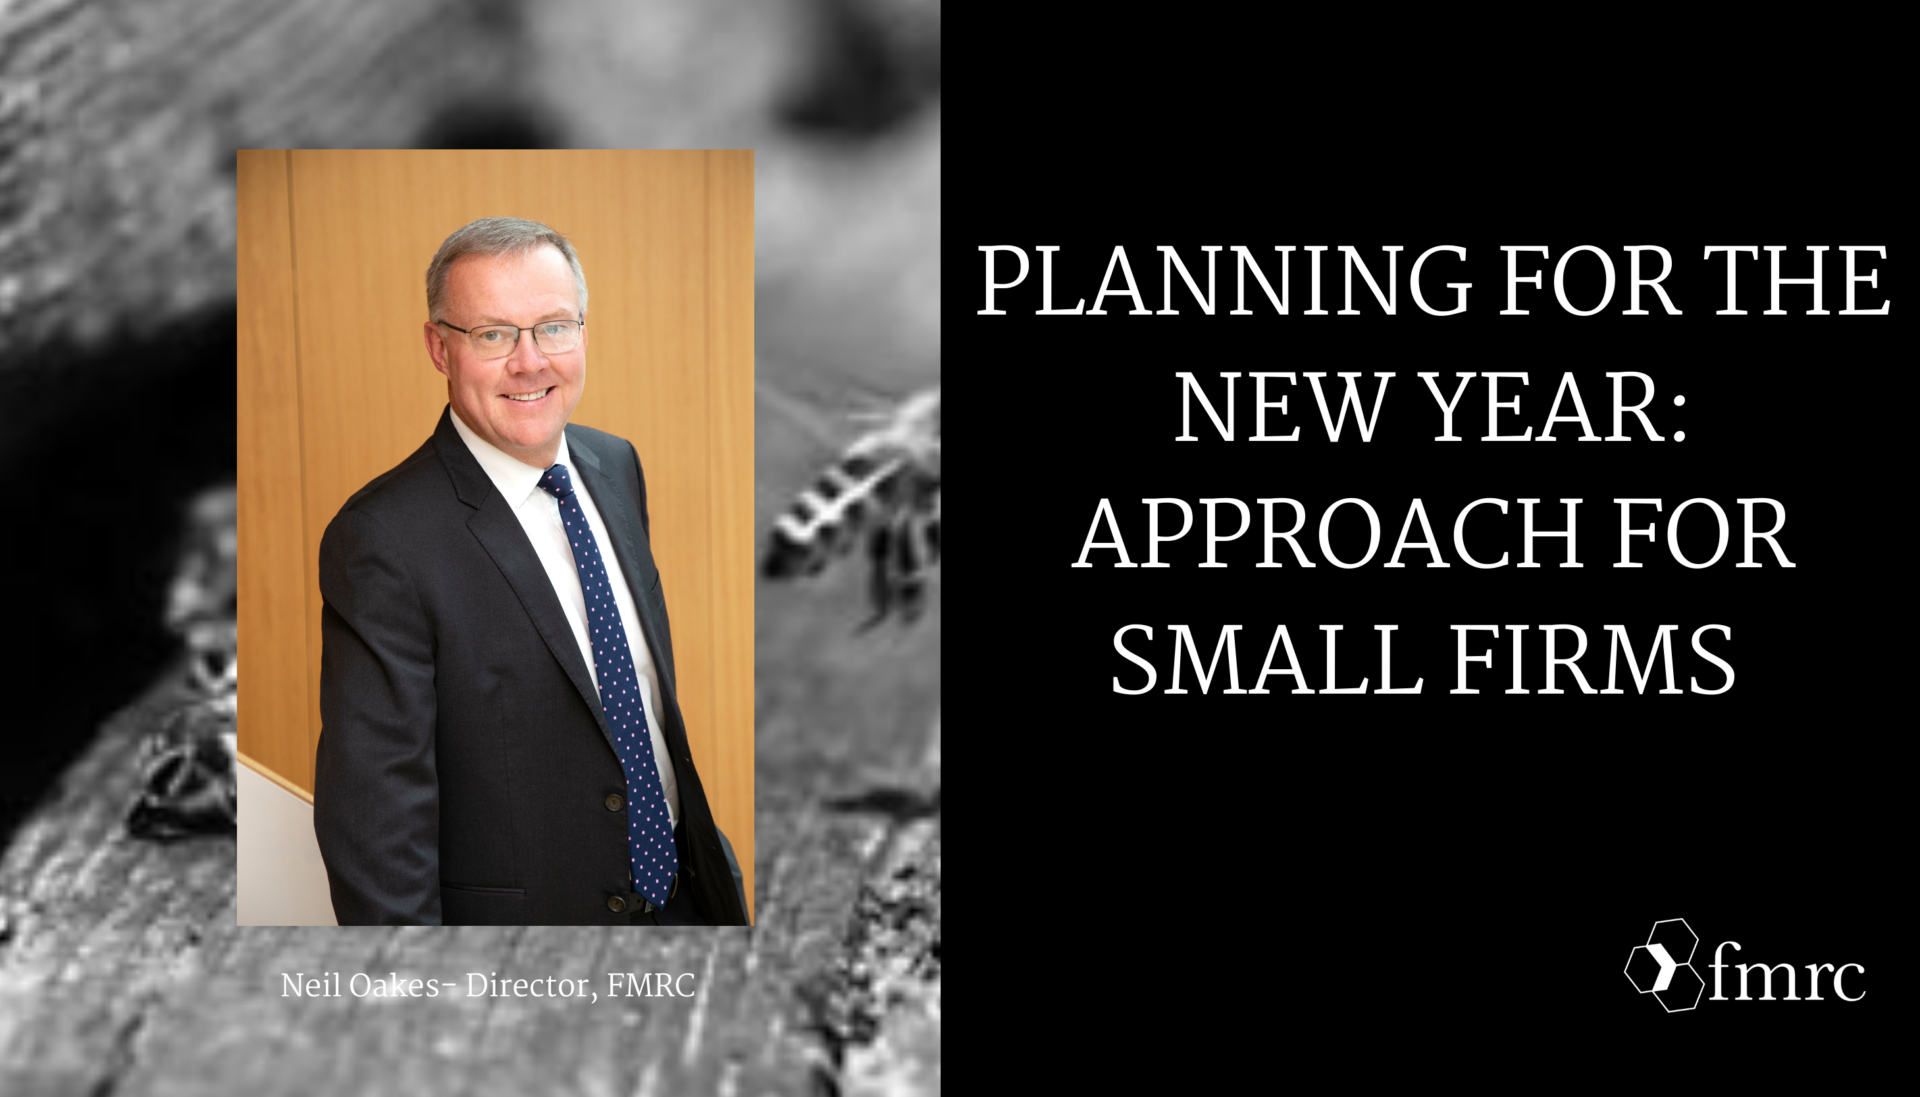 Planning for the New Year: An Approach for Small Firms